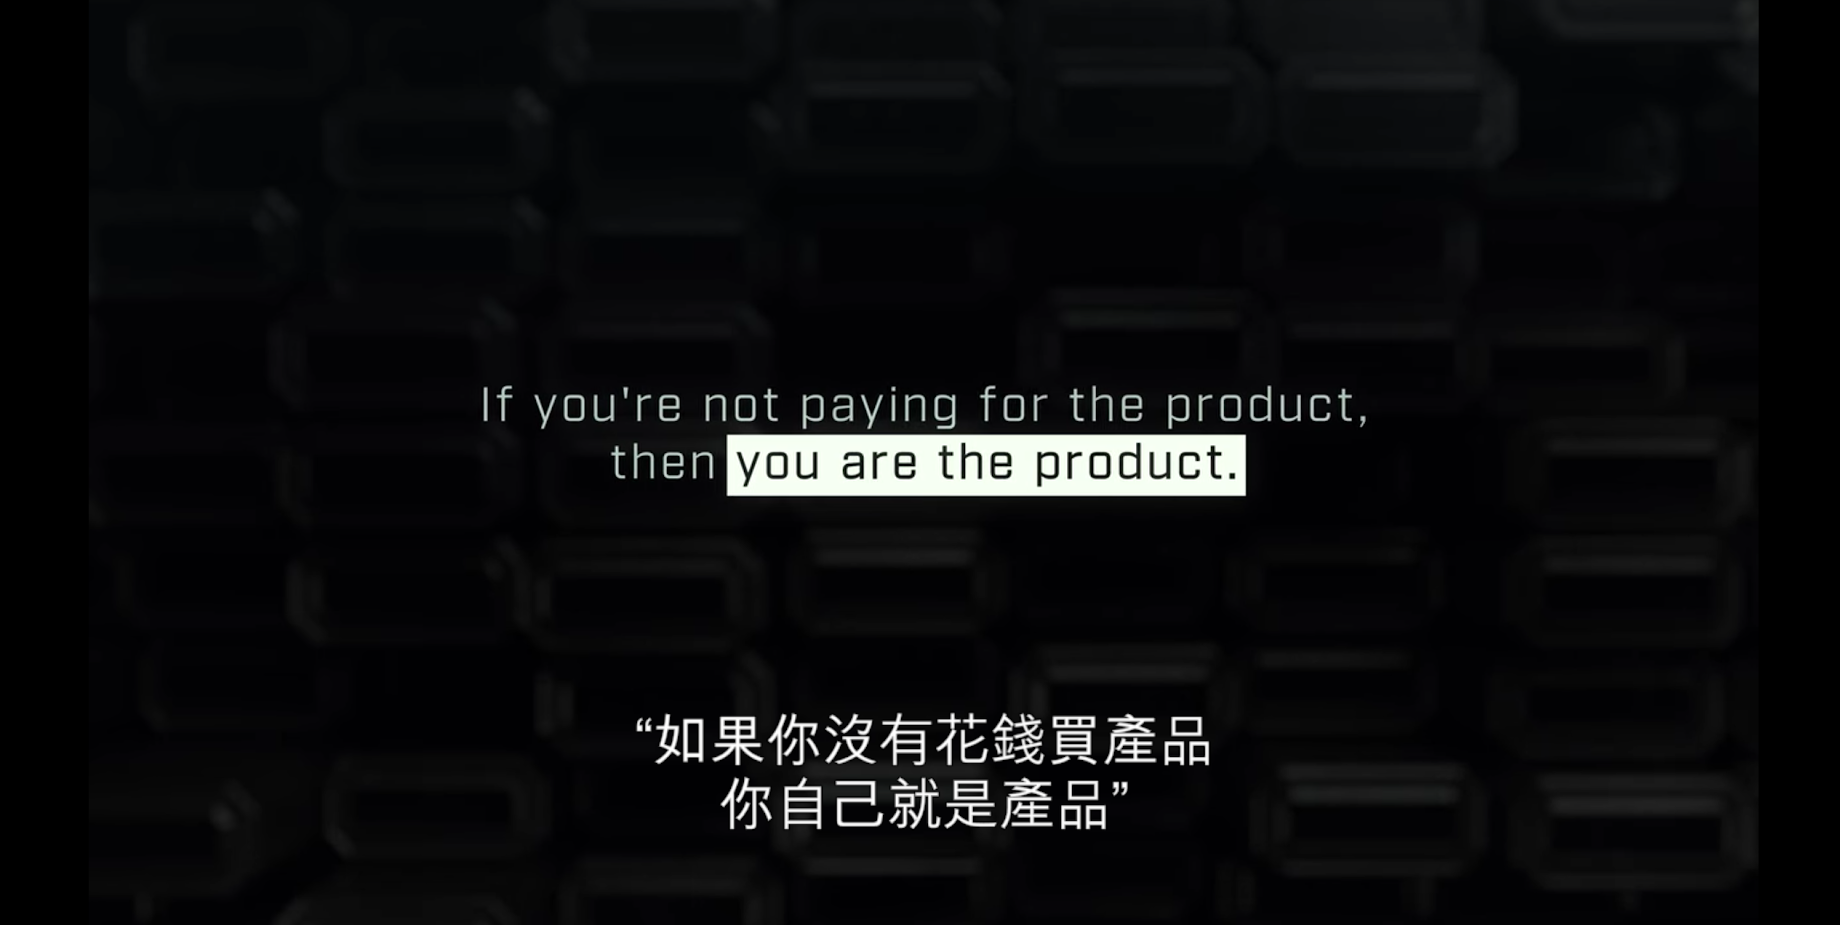 Social Dilemma: If you are not paying for a product, then you are the product